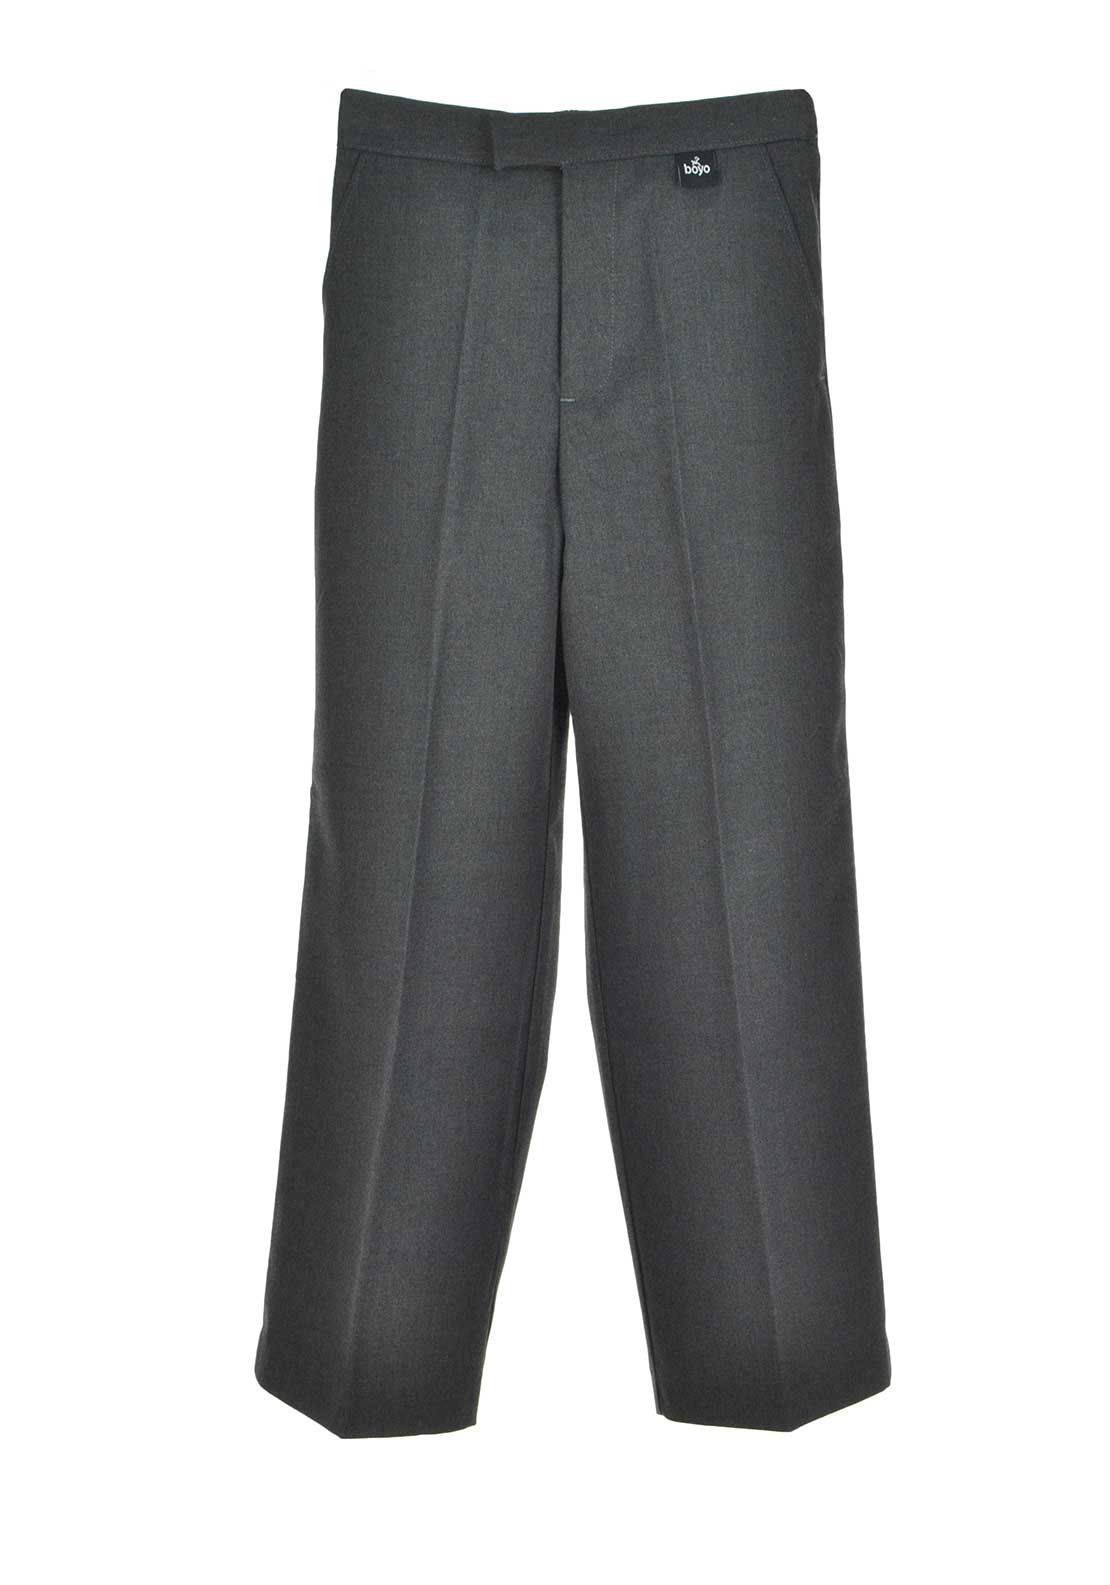 Boys School Uniform Trousers, Grey